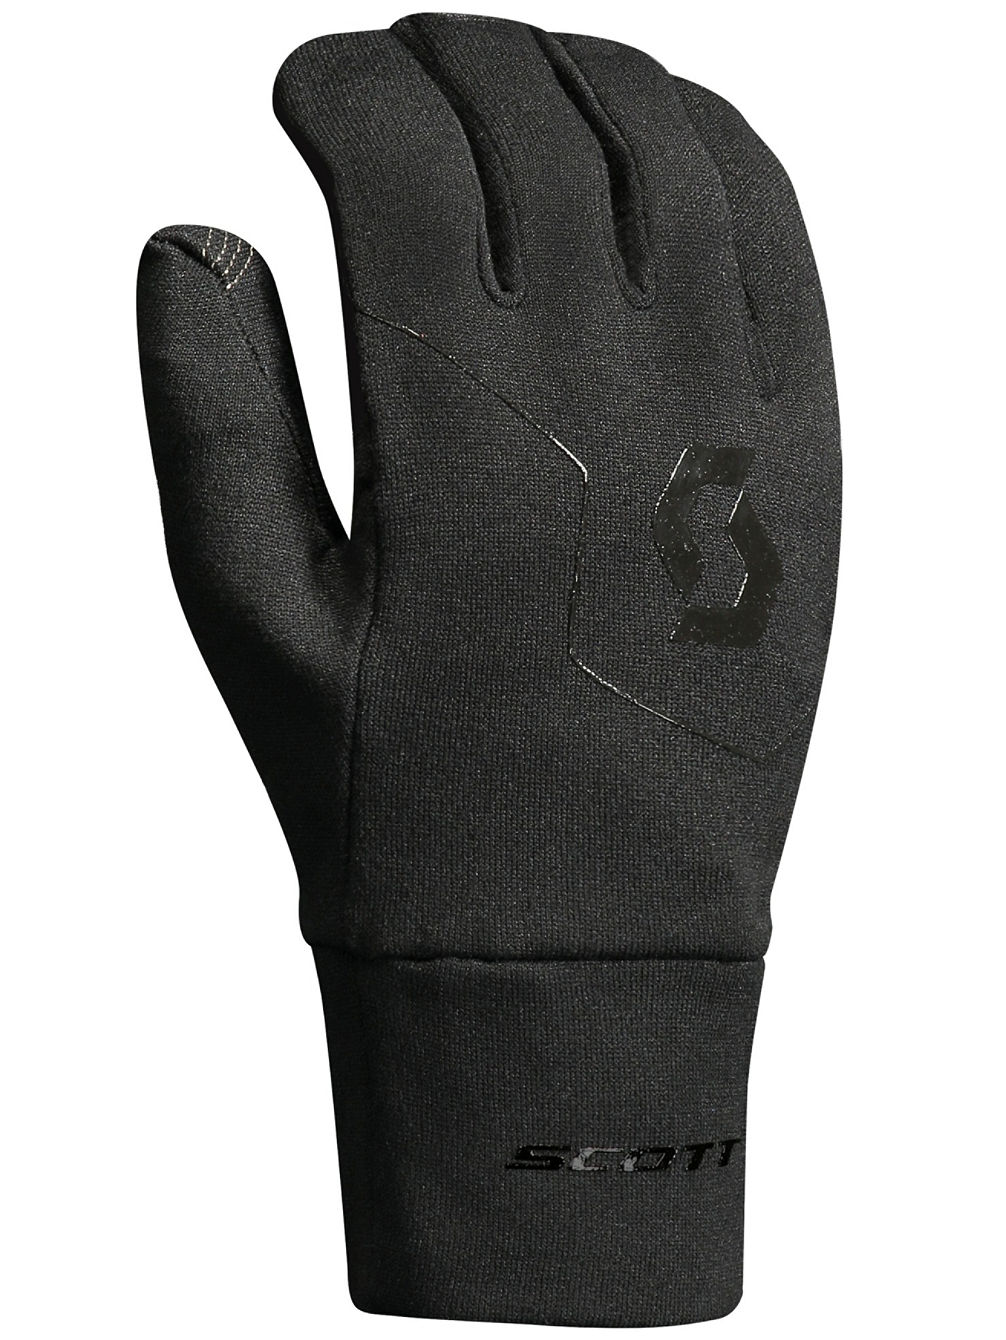 Liner Lf Bike Gloves